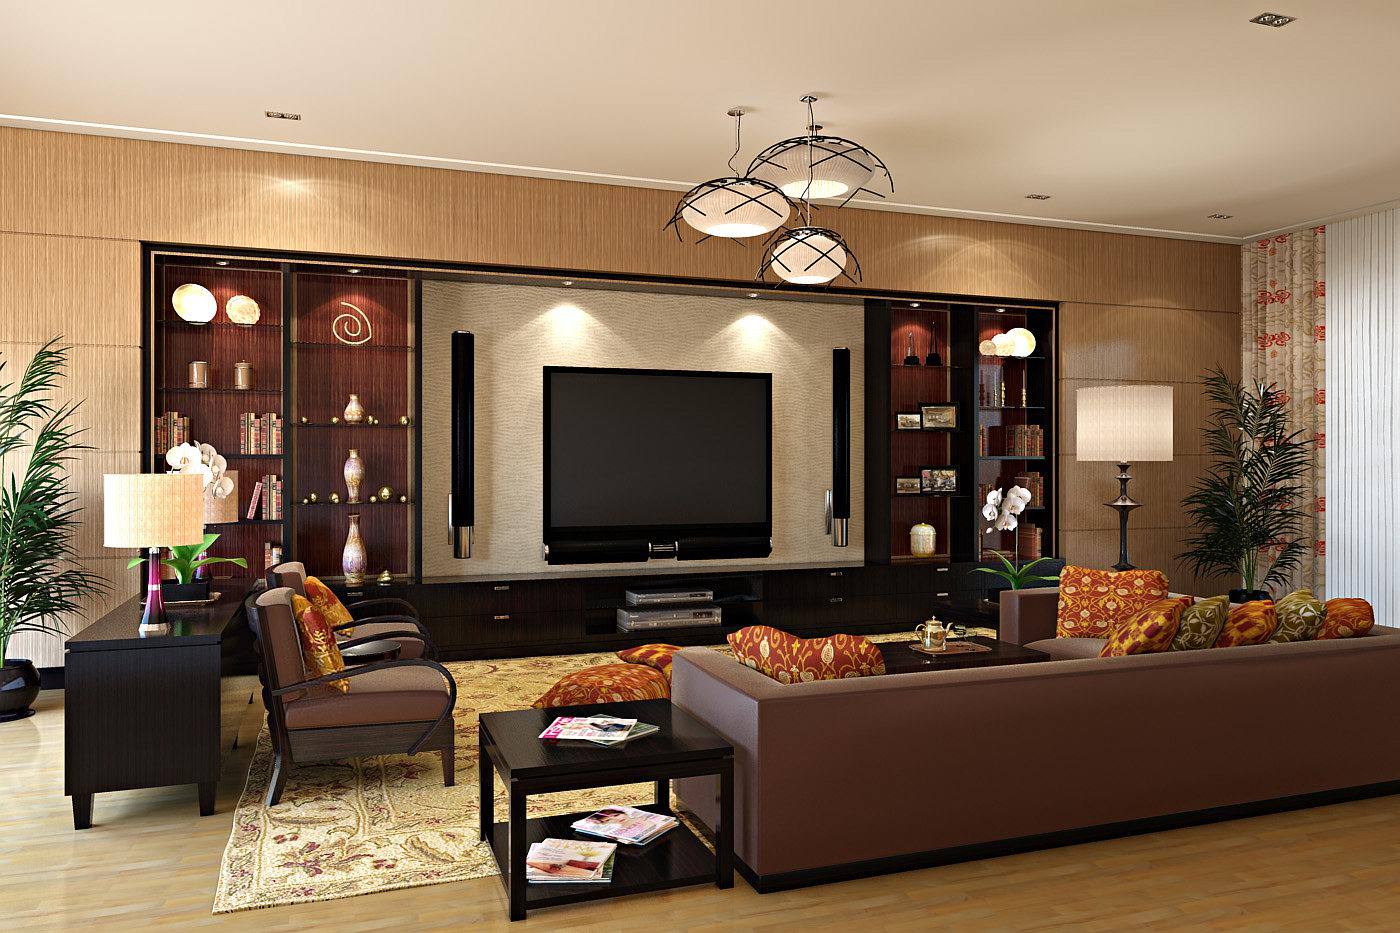 Luxury Living Rooms Only the Rich Can Afford Decoration Designs Guide